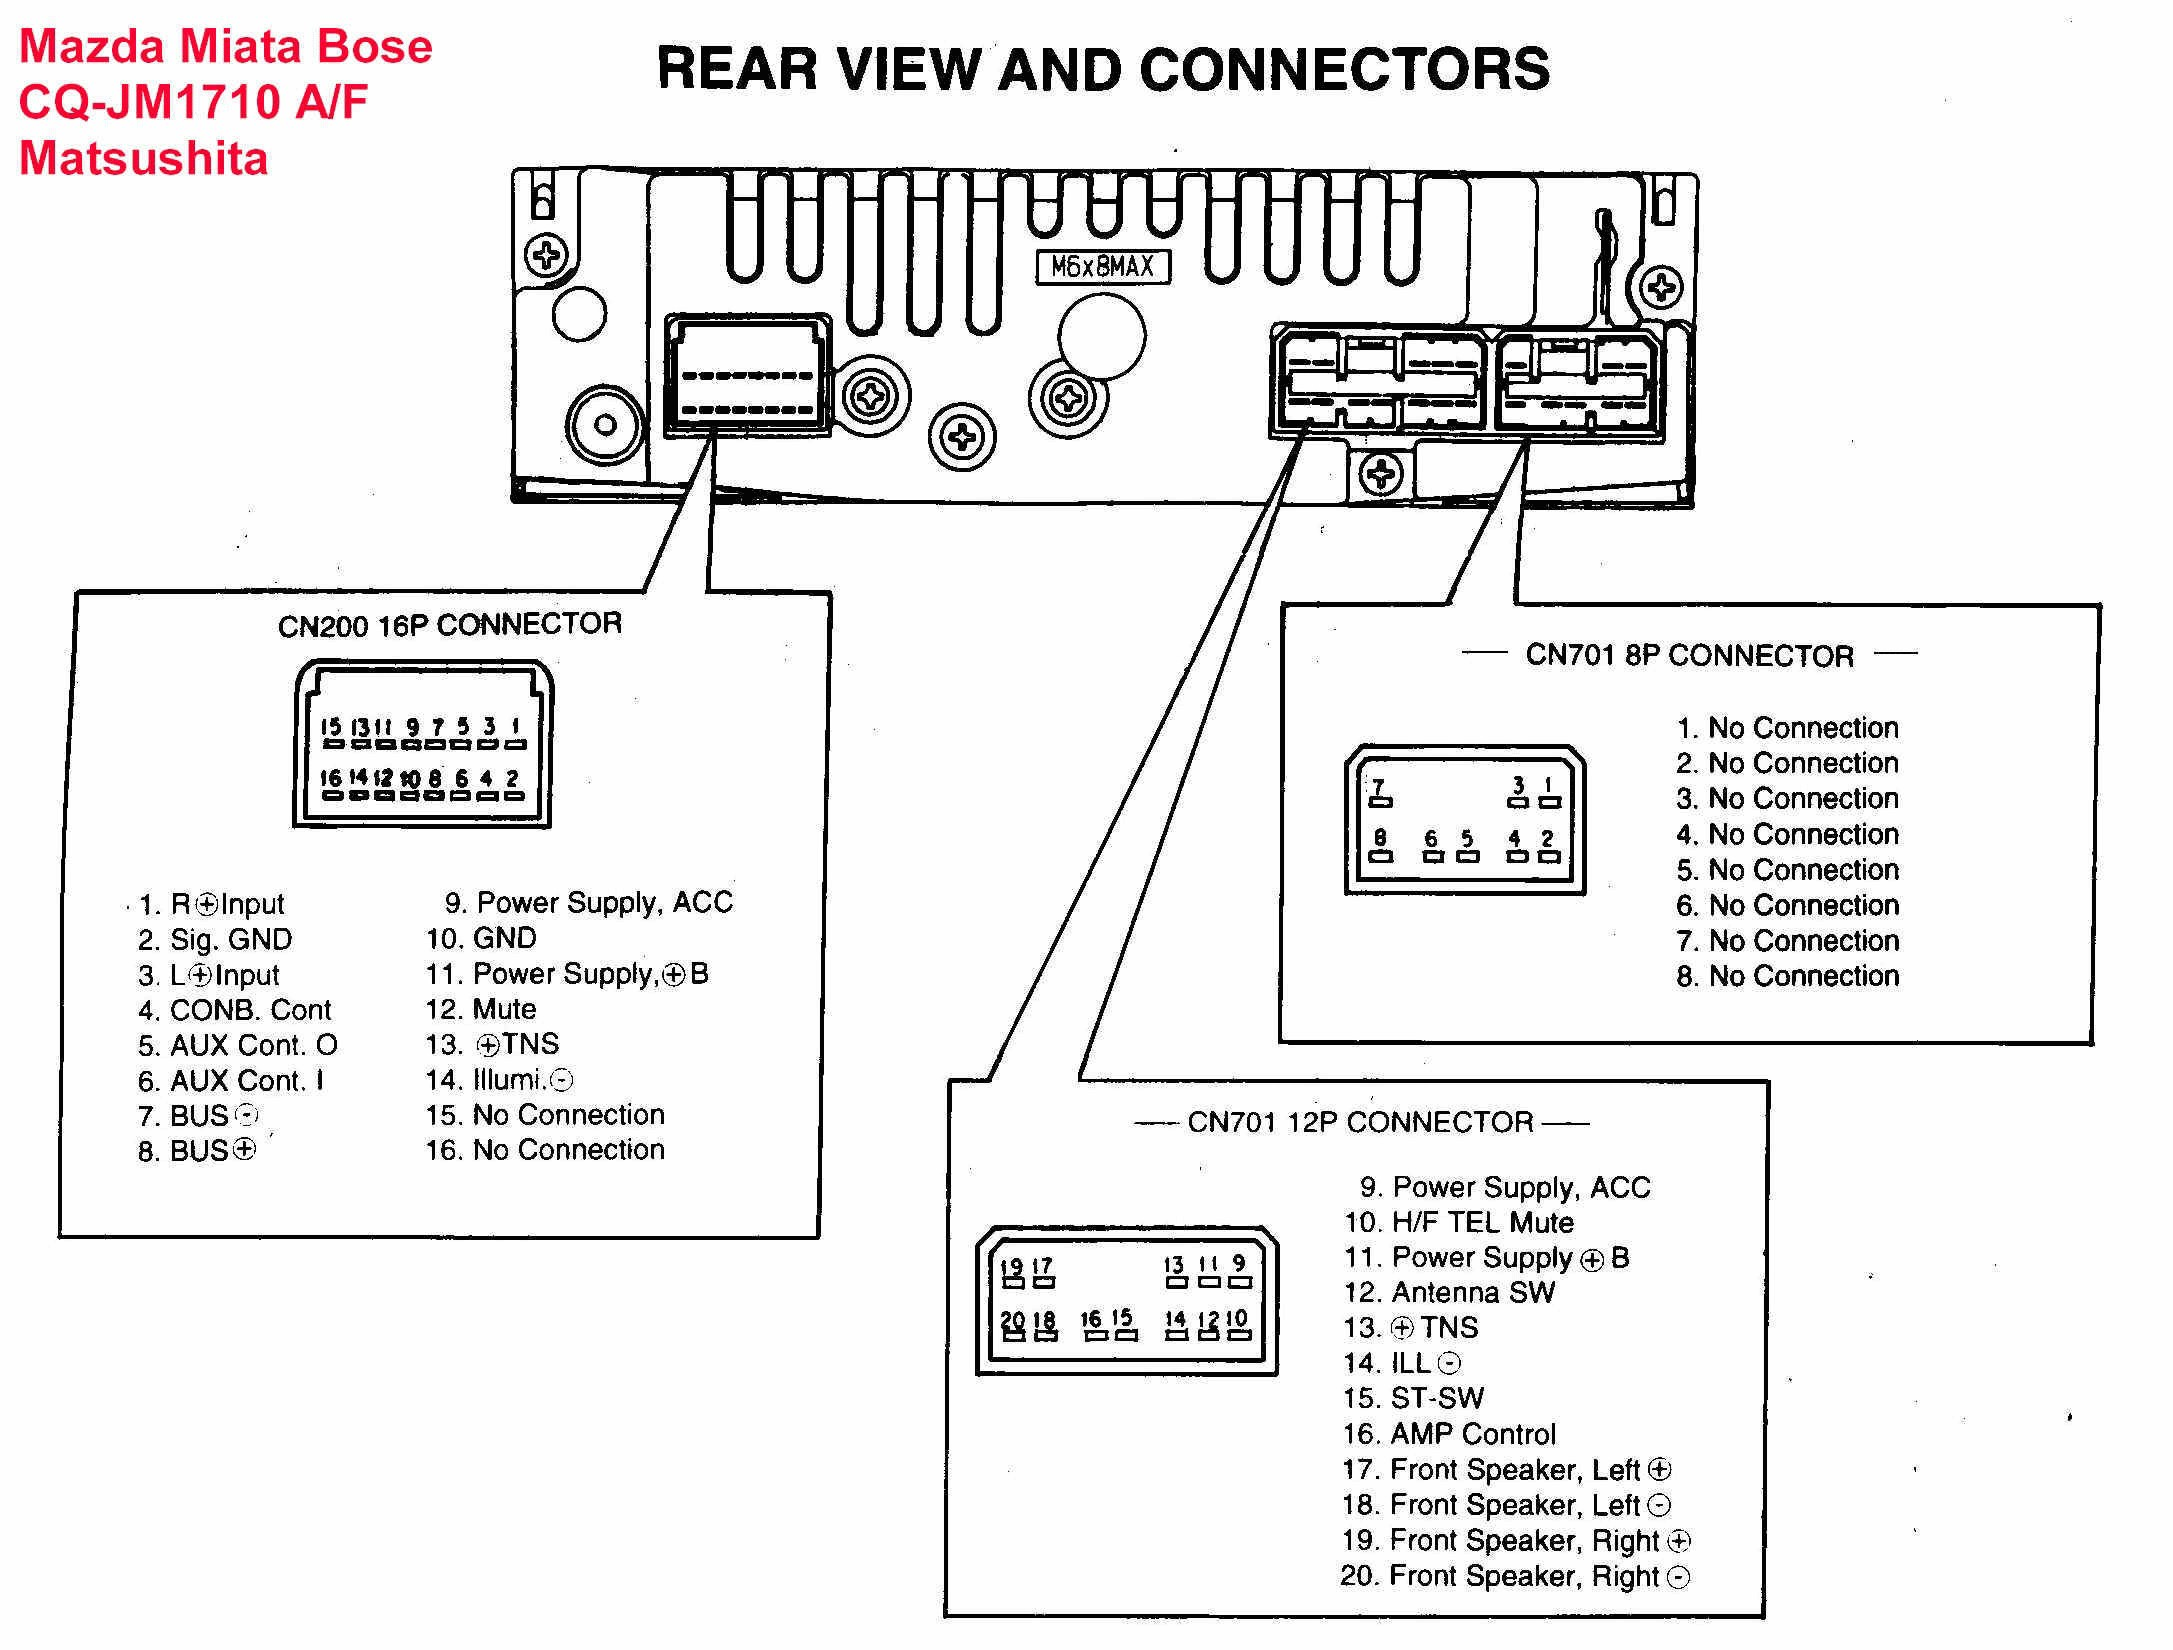 D15354 1991 Nissan Maxima Fuse Box Diagram | Wiring Library car stereo wiring harness color codes Wiring Library